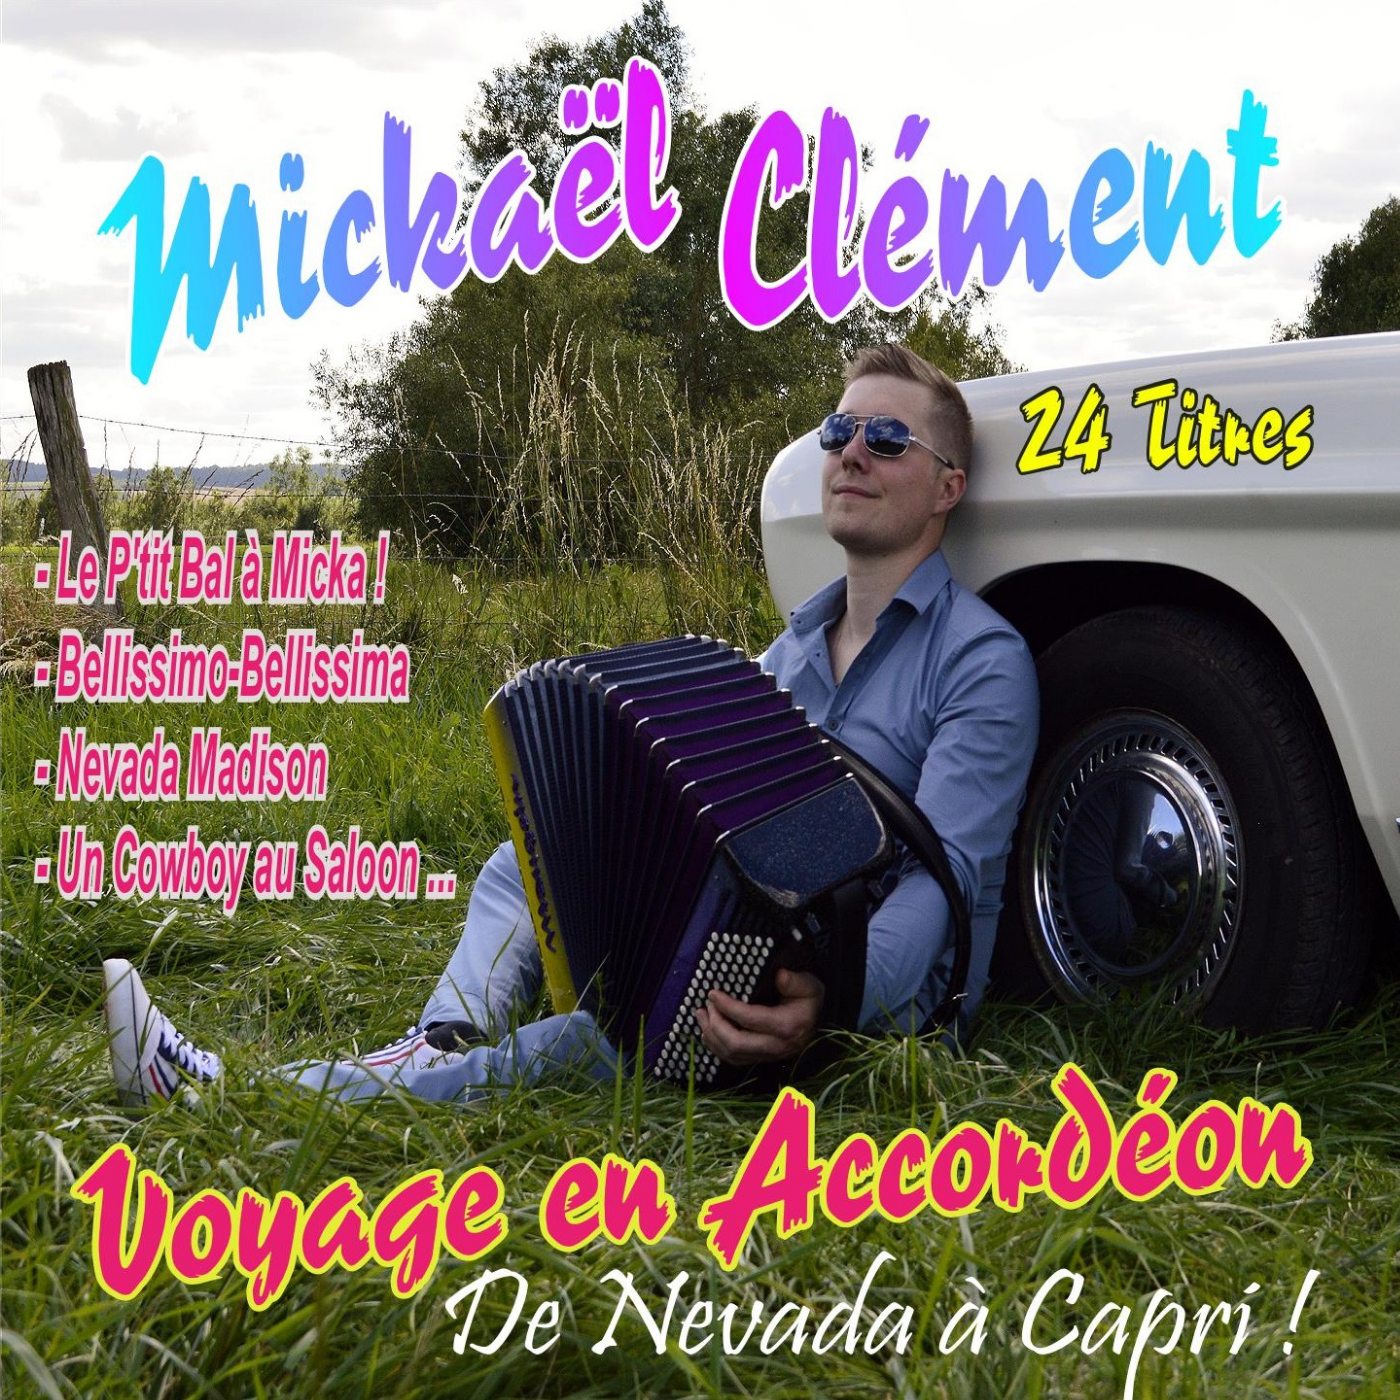 Cd mickael clement